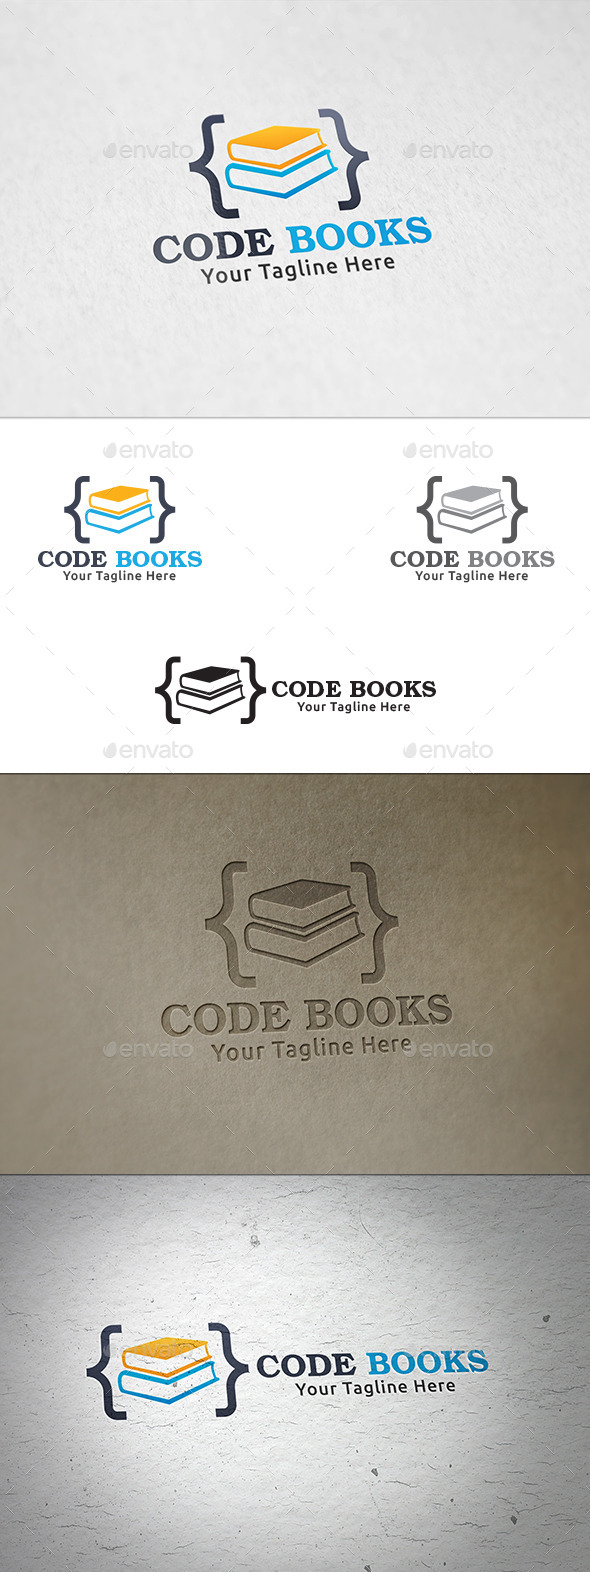 Code Books - Logo Template